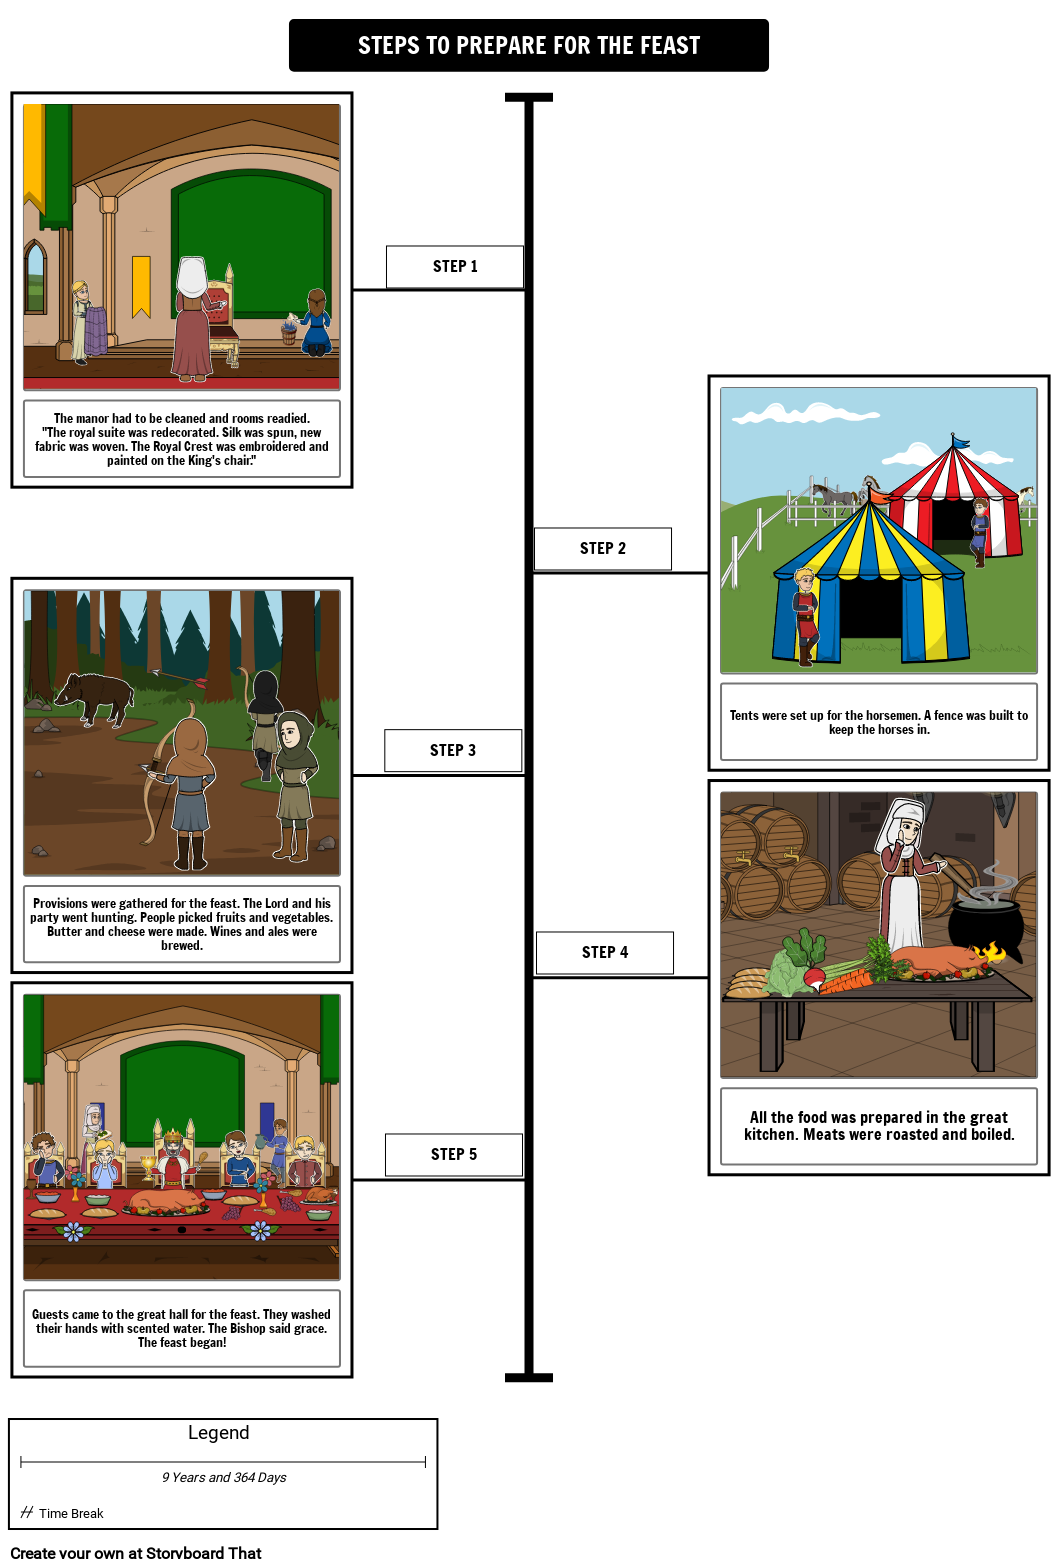 A Medieval Feast Timeline